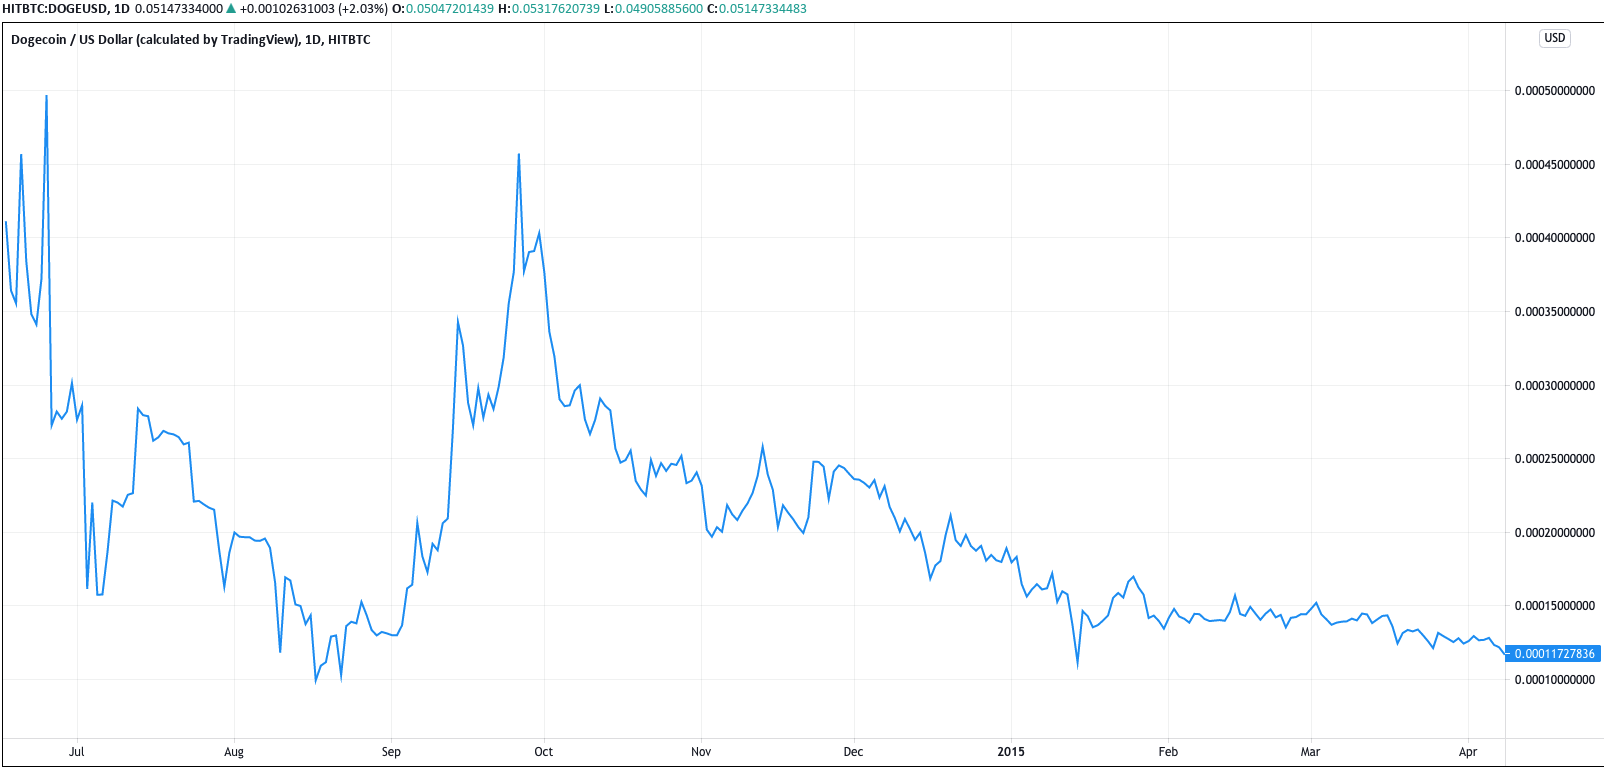 DOGE/USD price July 2014- April 2015 (HitBTC). Source: Tradingview